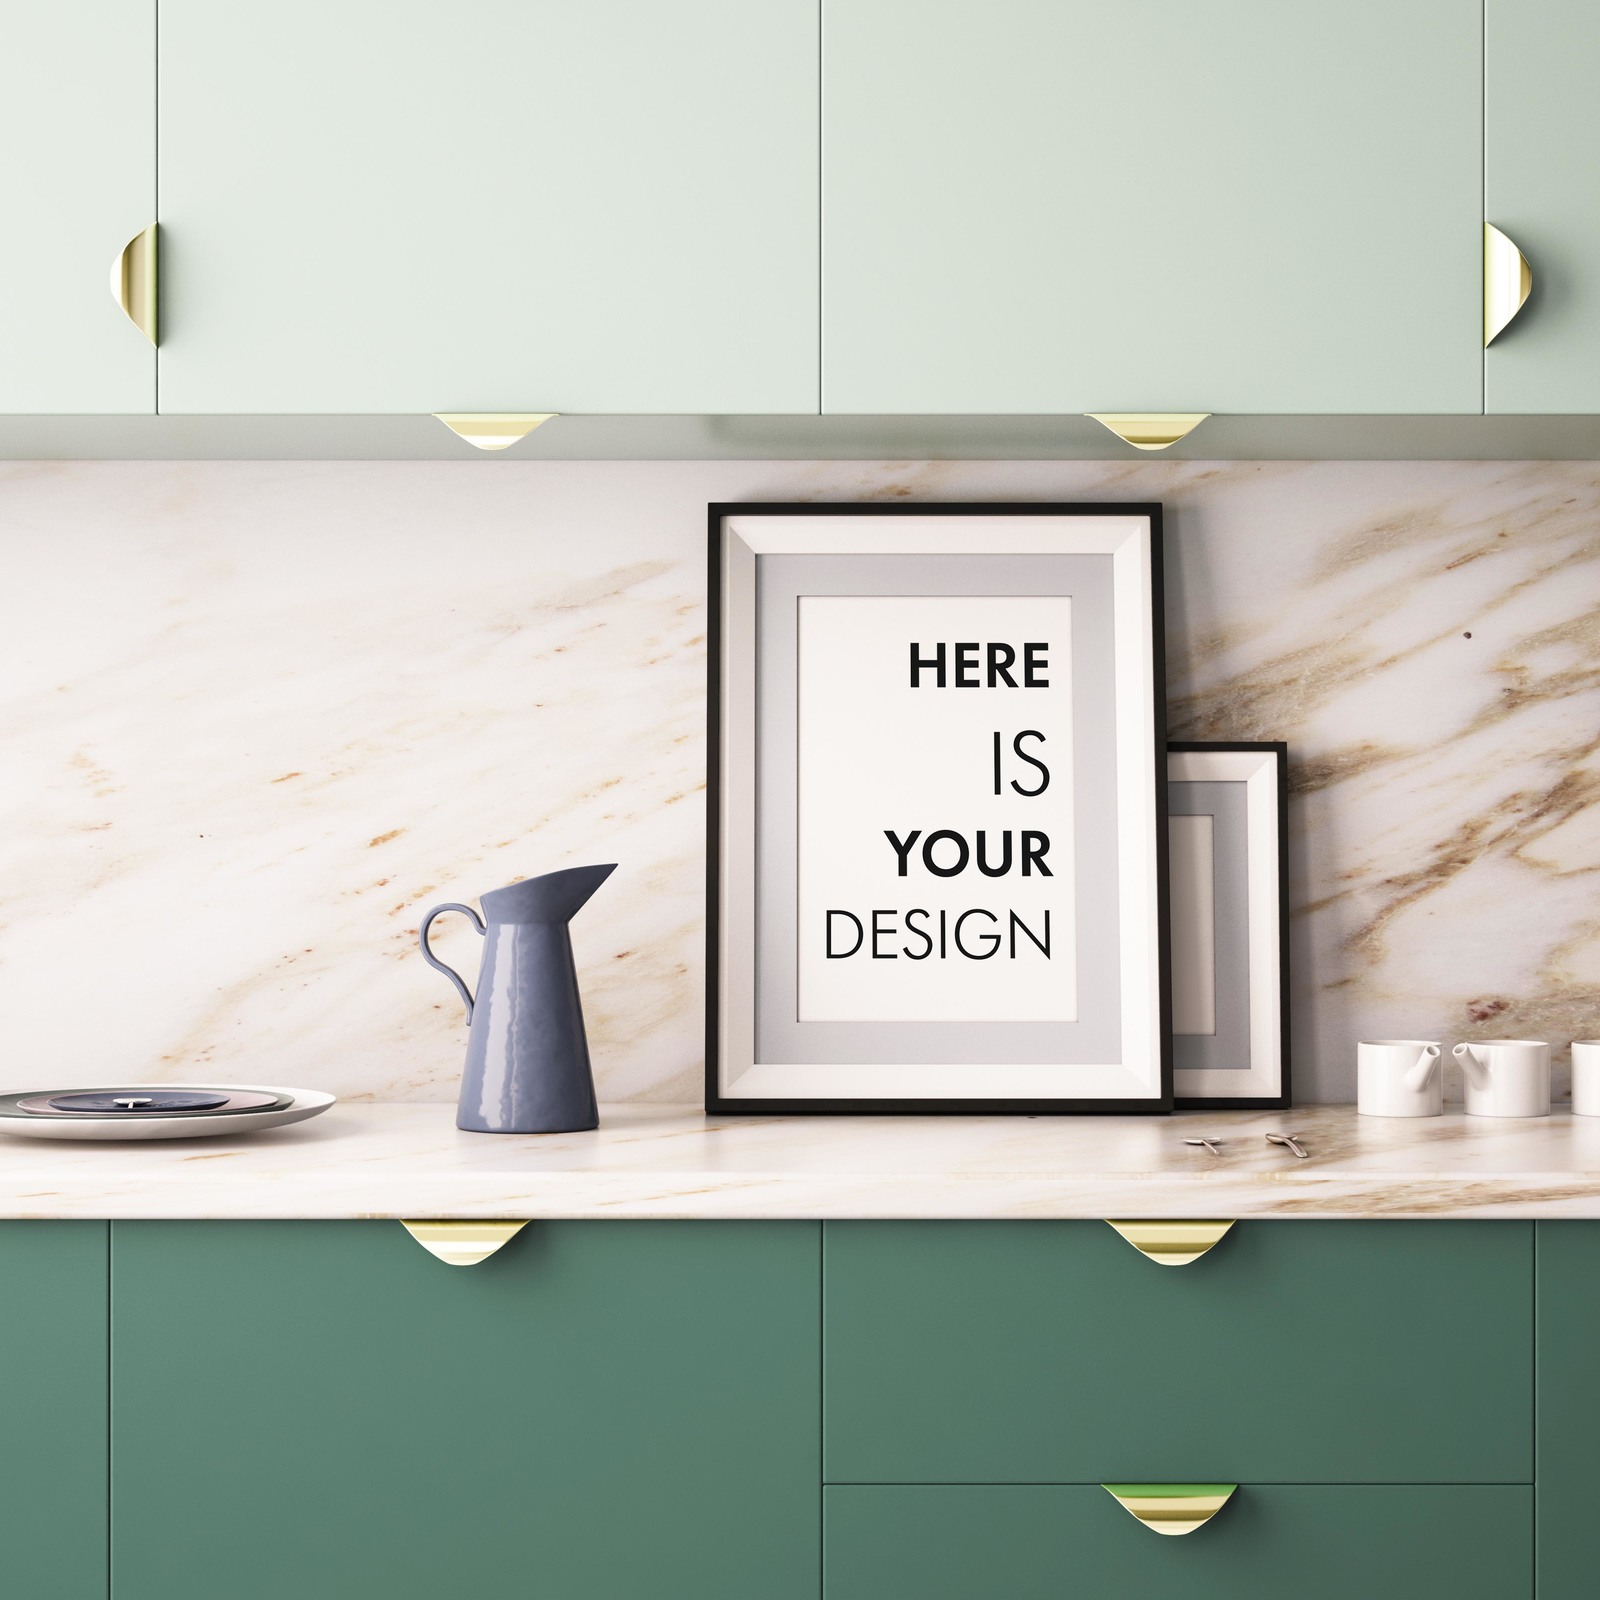 10 Mockups posters in the kitchen